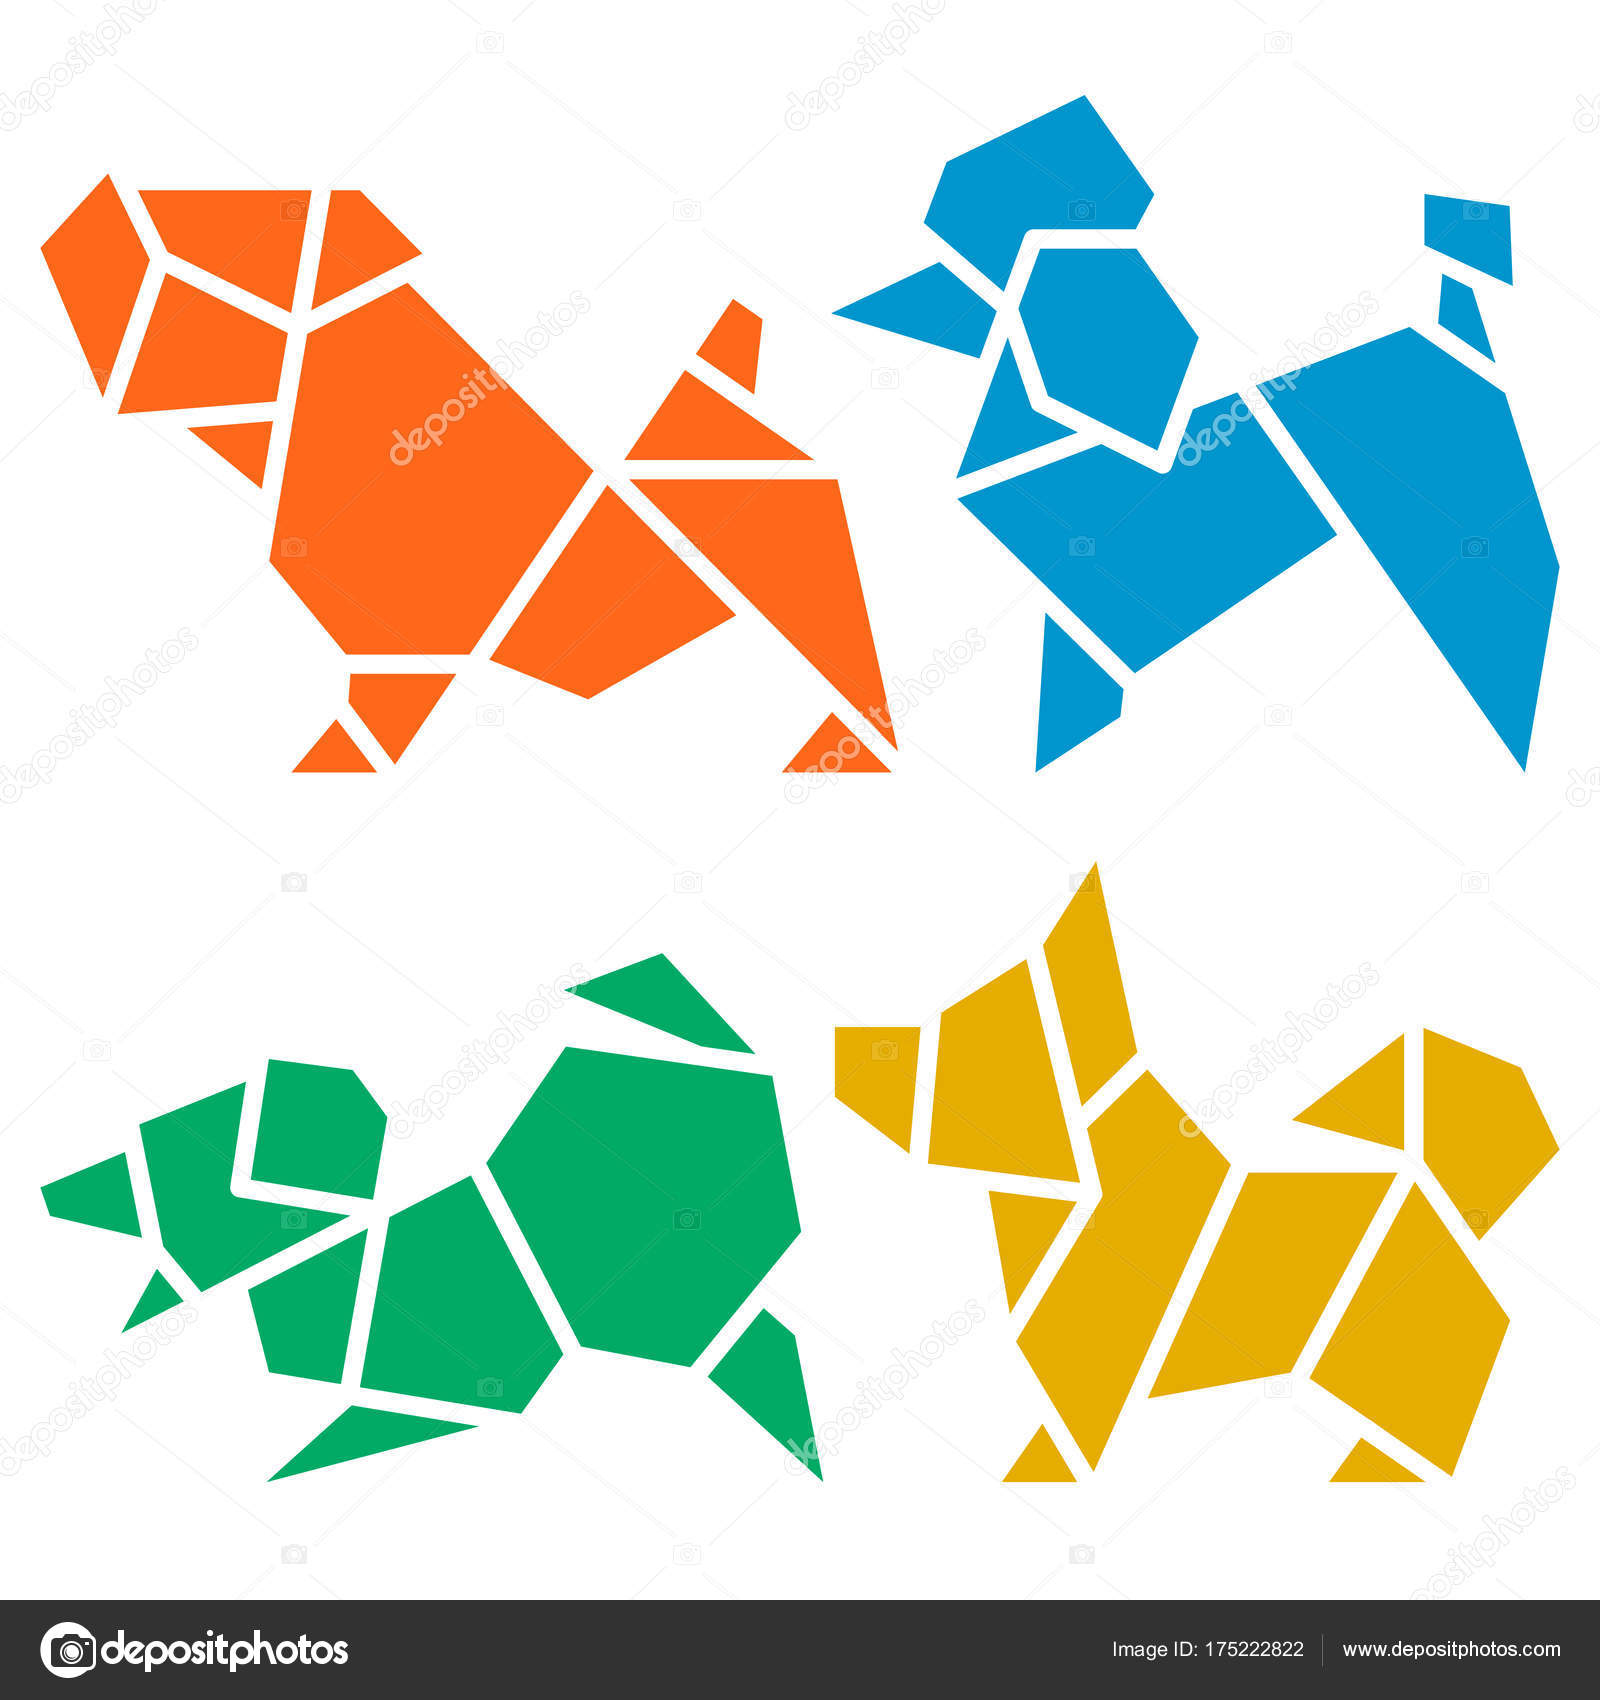 2018 Chinese New Year Symbol Stock Illustration Vector Origami Dogs Icon Set Abstract Low Poly Pet Dog